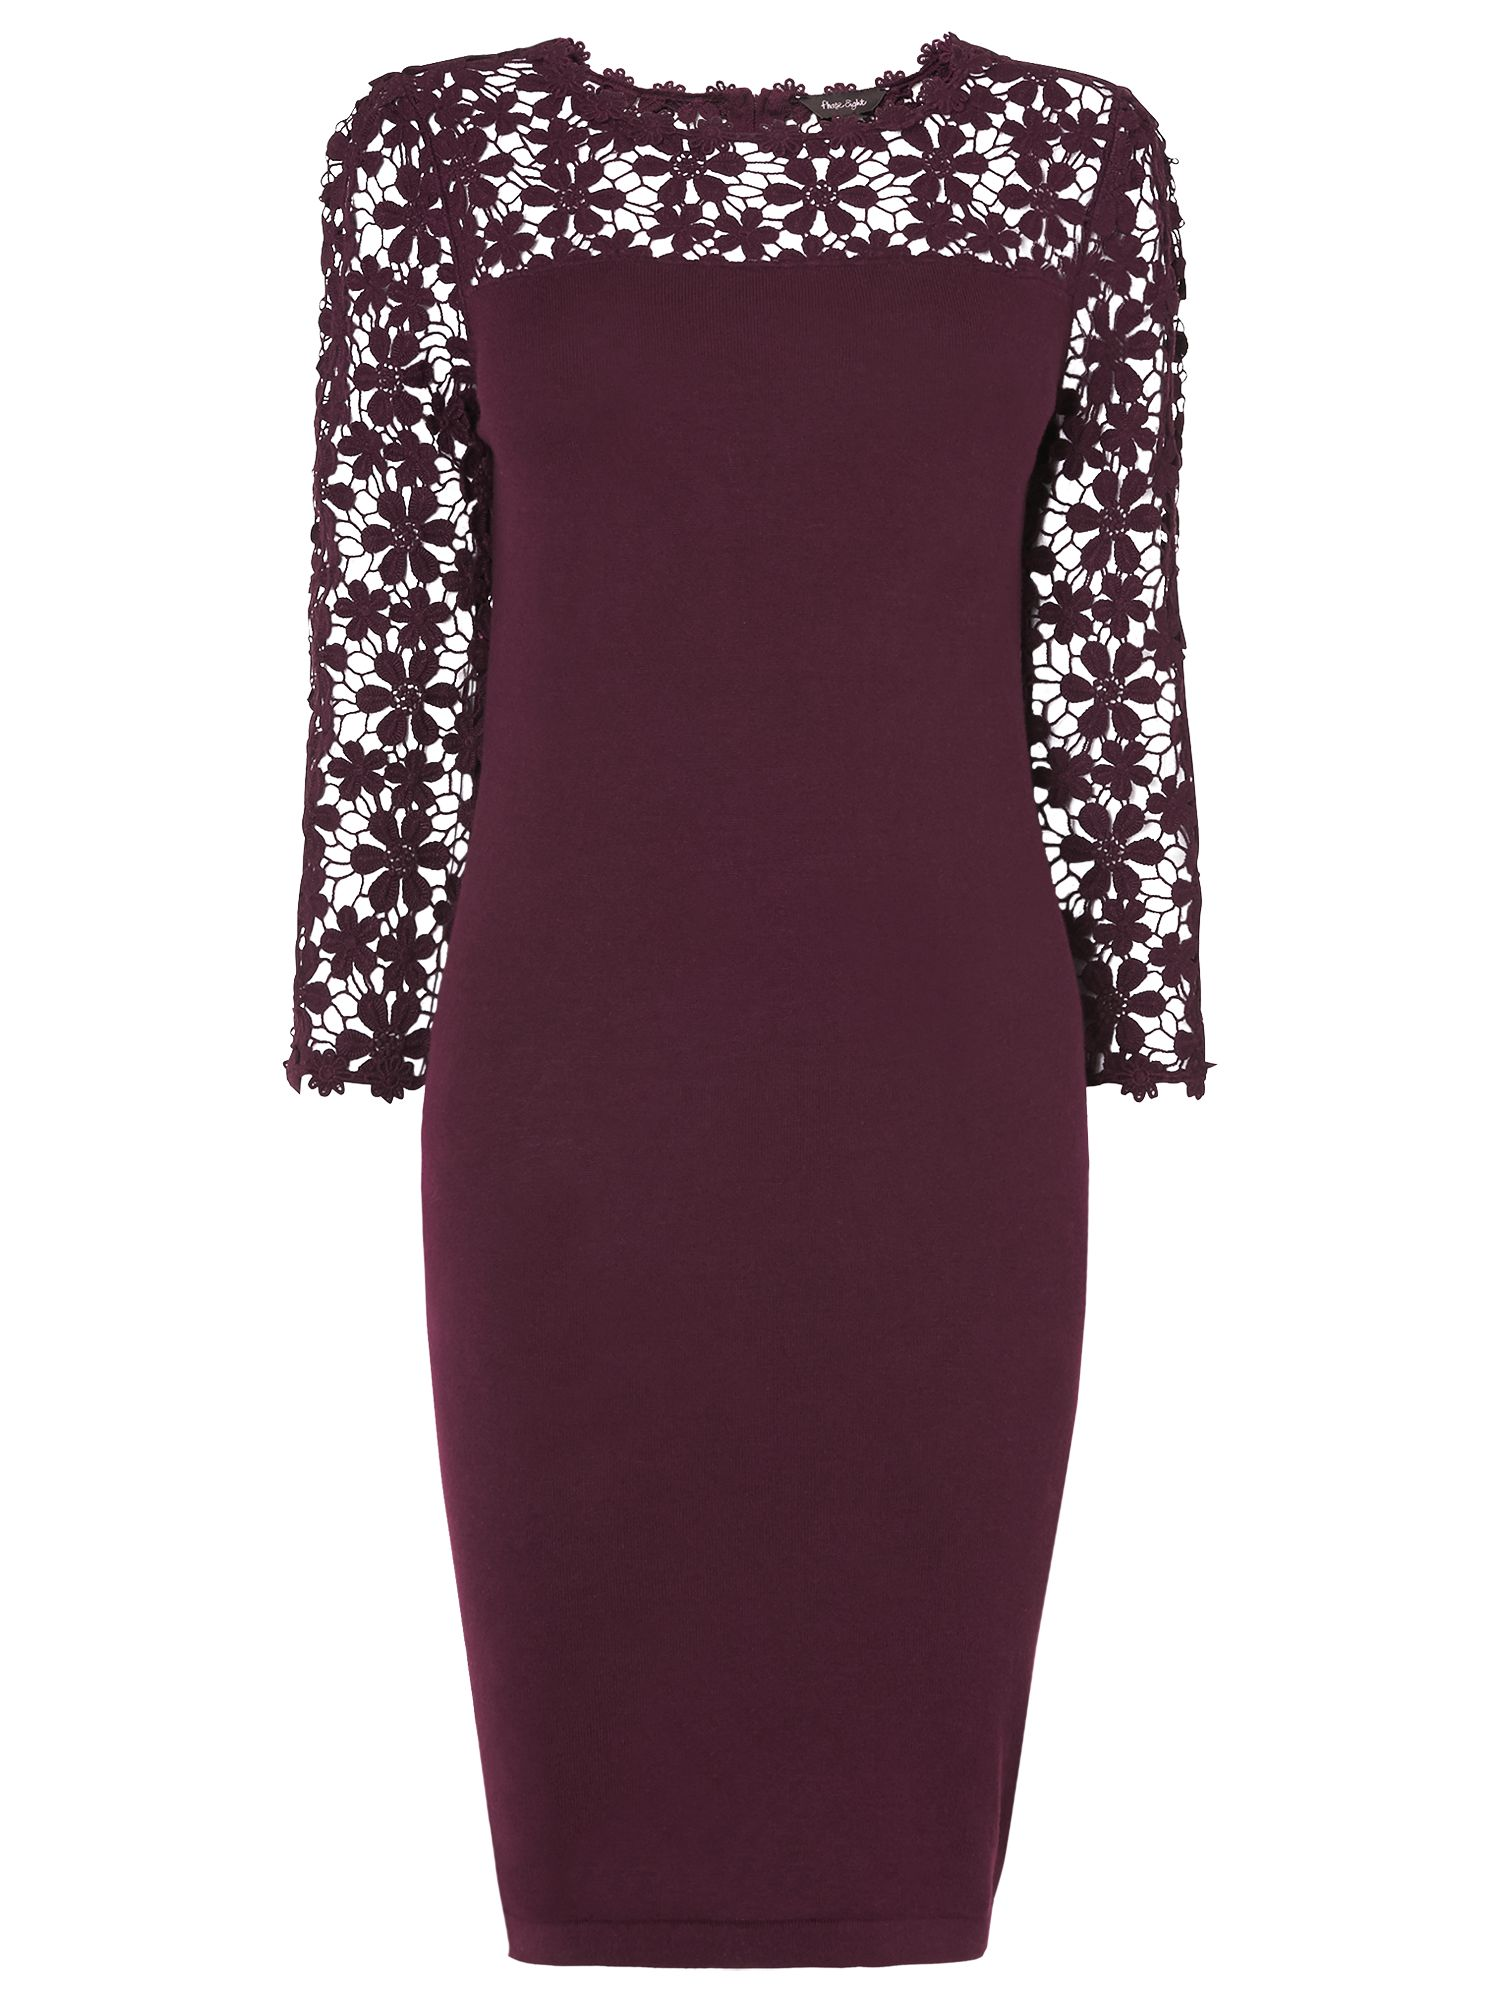 phase eight suzy lace dress blackberry, phase, eight, suzy, lace, dress, blackberry, phase eight, 16|14, clearance, womenswear offers, womens dresses offers, new years party offers, women, party outfits, lace dress, inactive womenswear, new reductions, womens dresses, special offers, fashion magazine, brands l-z, buyers top picks, 1673339